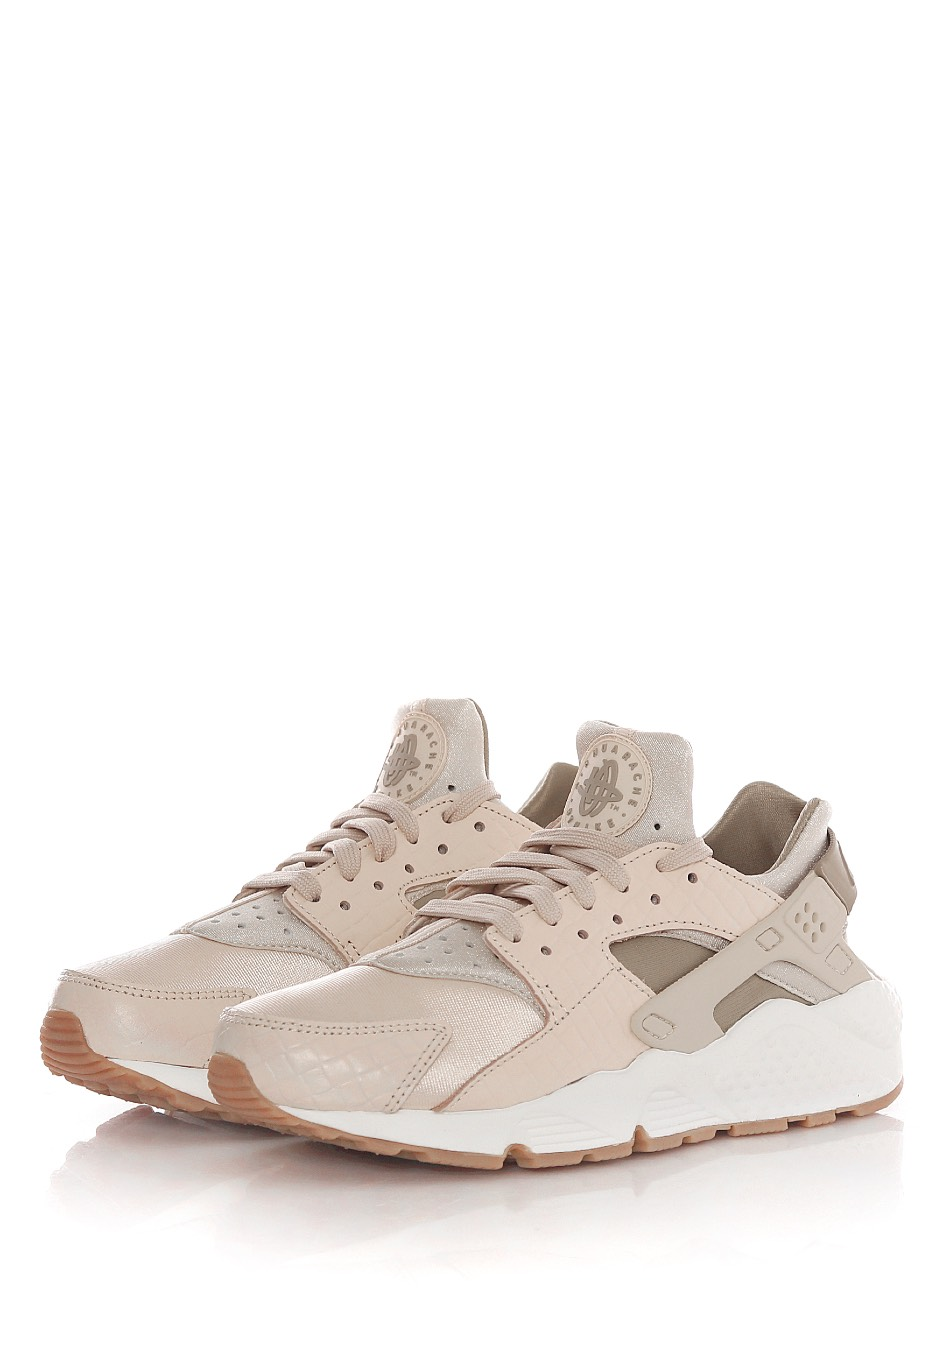 new concept 58a5e 07661 ... ultra girls grade school 00b6a 23892  low price nike air huarache run  premium oatmeal khaki sail gum med brown b3d71 eec45